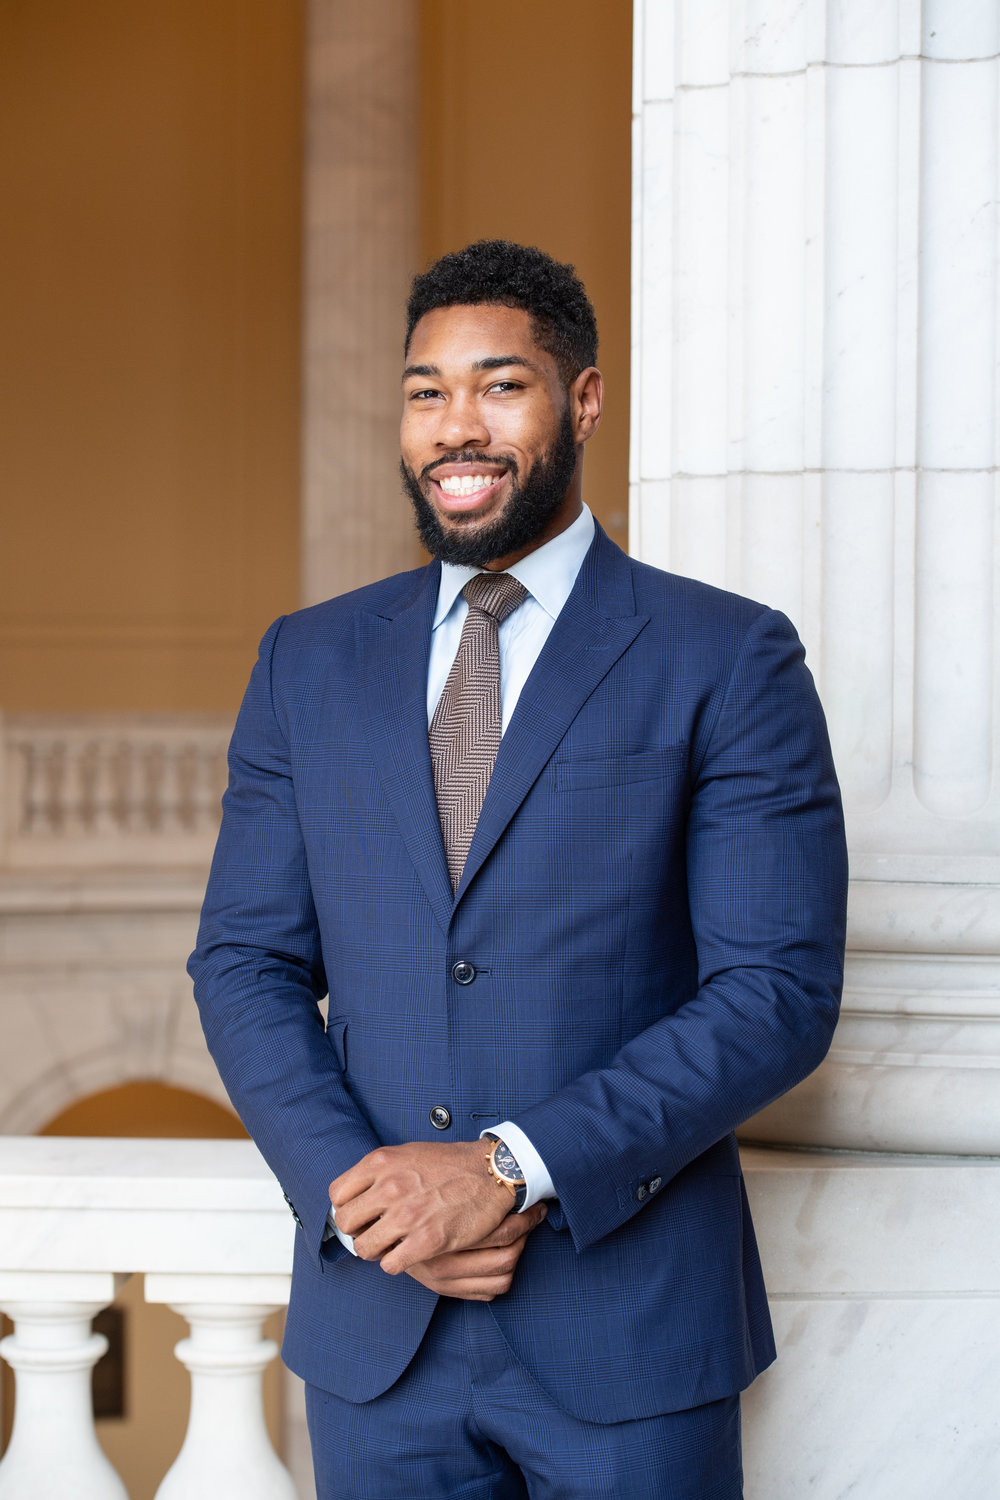 - Paul Nicholas serves as the Staff Assistant in the office of Congressman Steny Hoyer (MD-05). He has been a member of CBA since 2016 where he was an intern in the office Congressman Elijah Cummings (MD-07) as well as the Committee on House administration. Paul grew up in Prince George's County, Maryland and graduated from the University of Maryland, College park where he focused in Public Policy and Business Administration. He is very proud to be part of the 2019 CBA executive board serving as Parliamentarian.